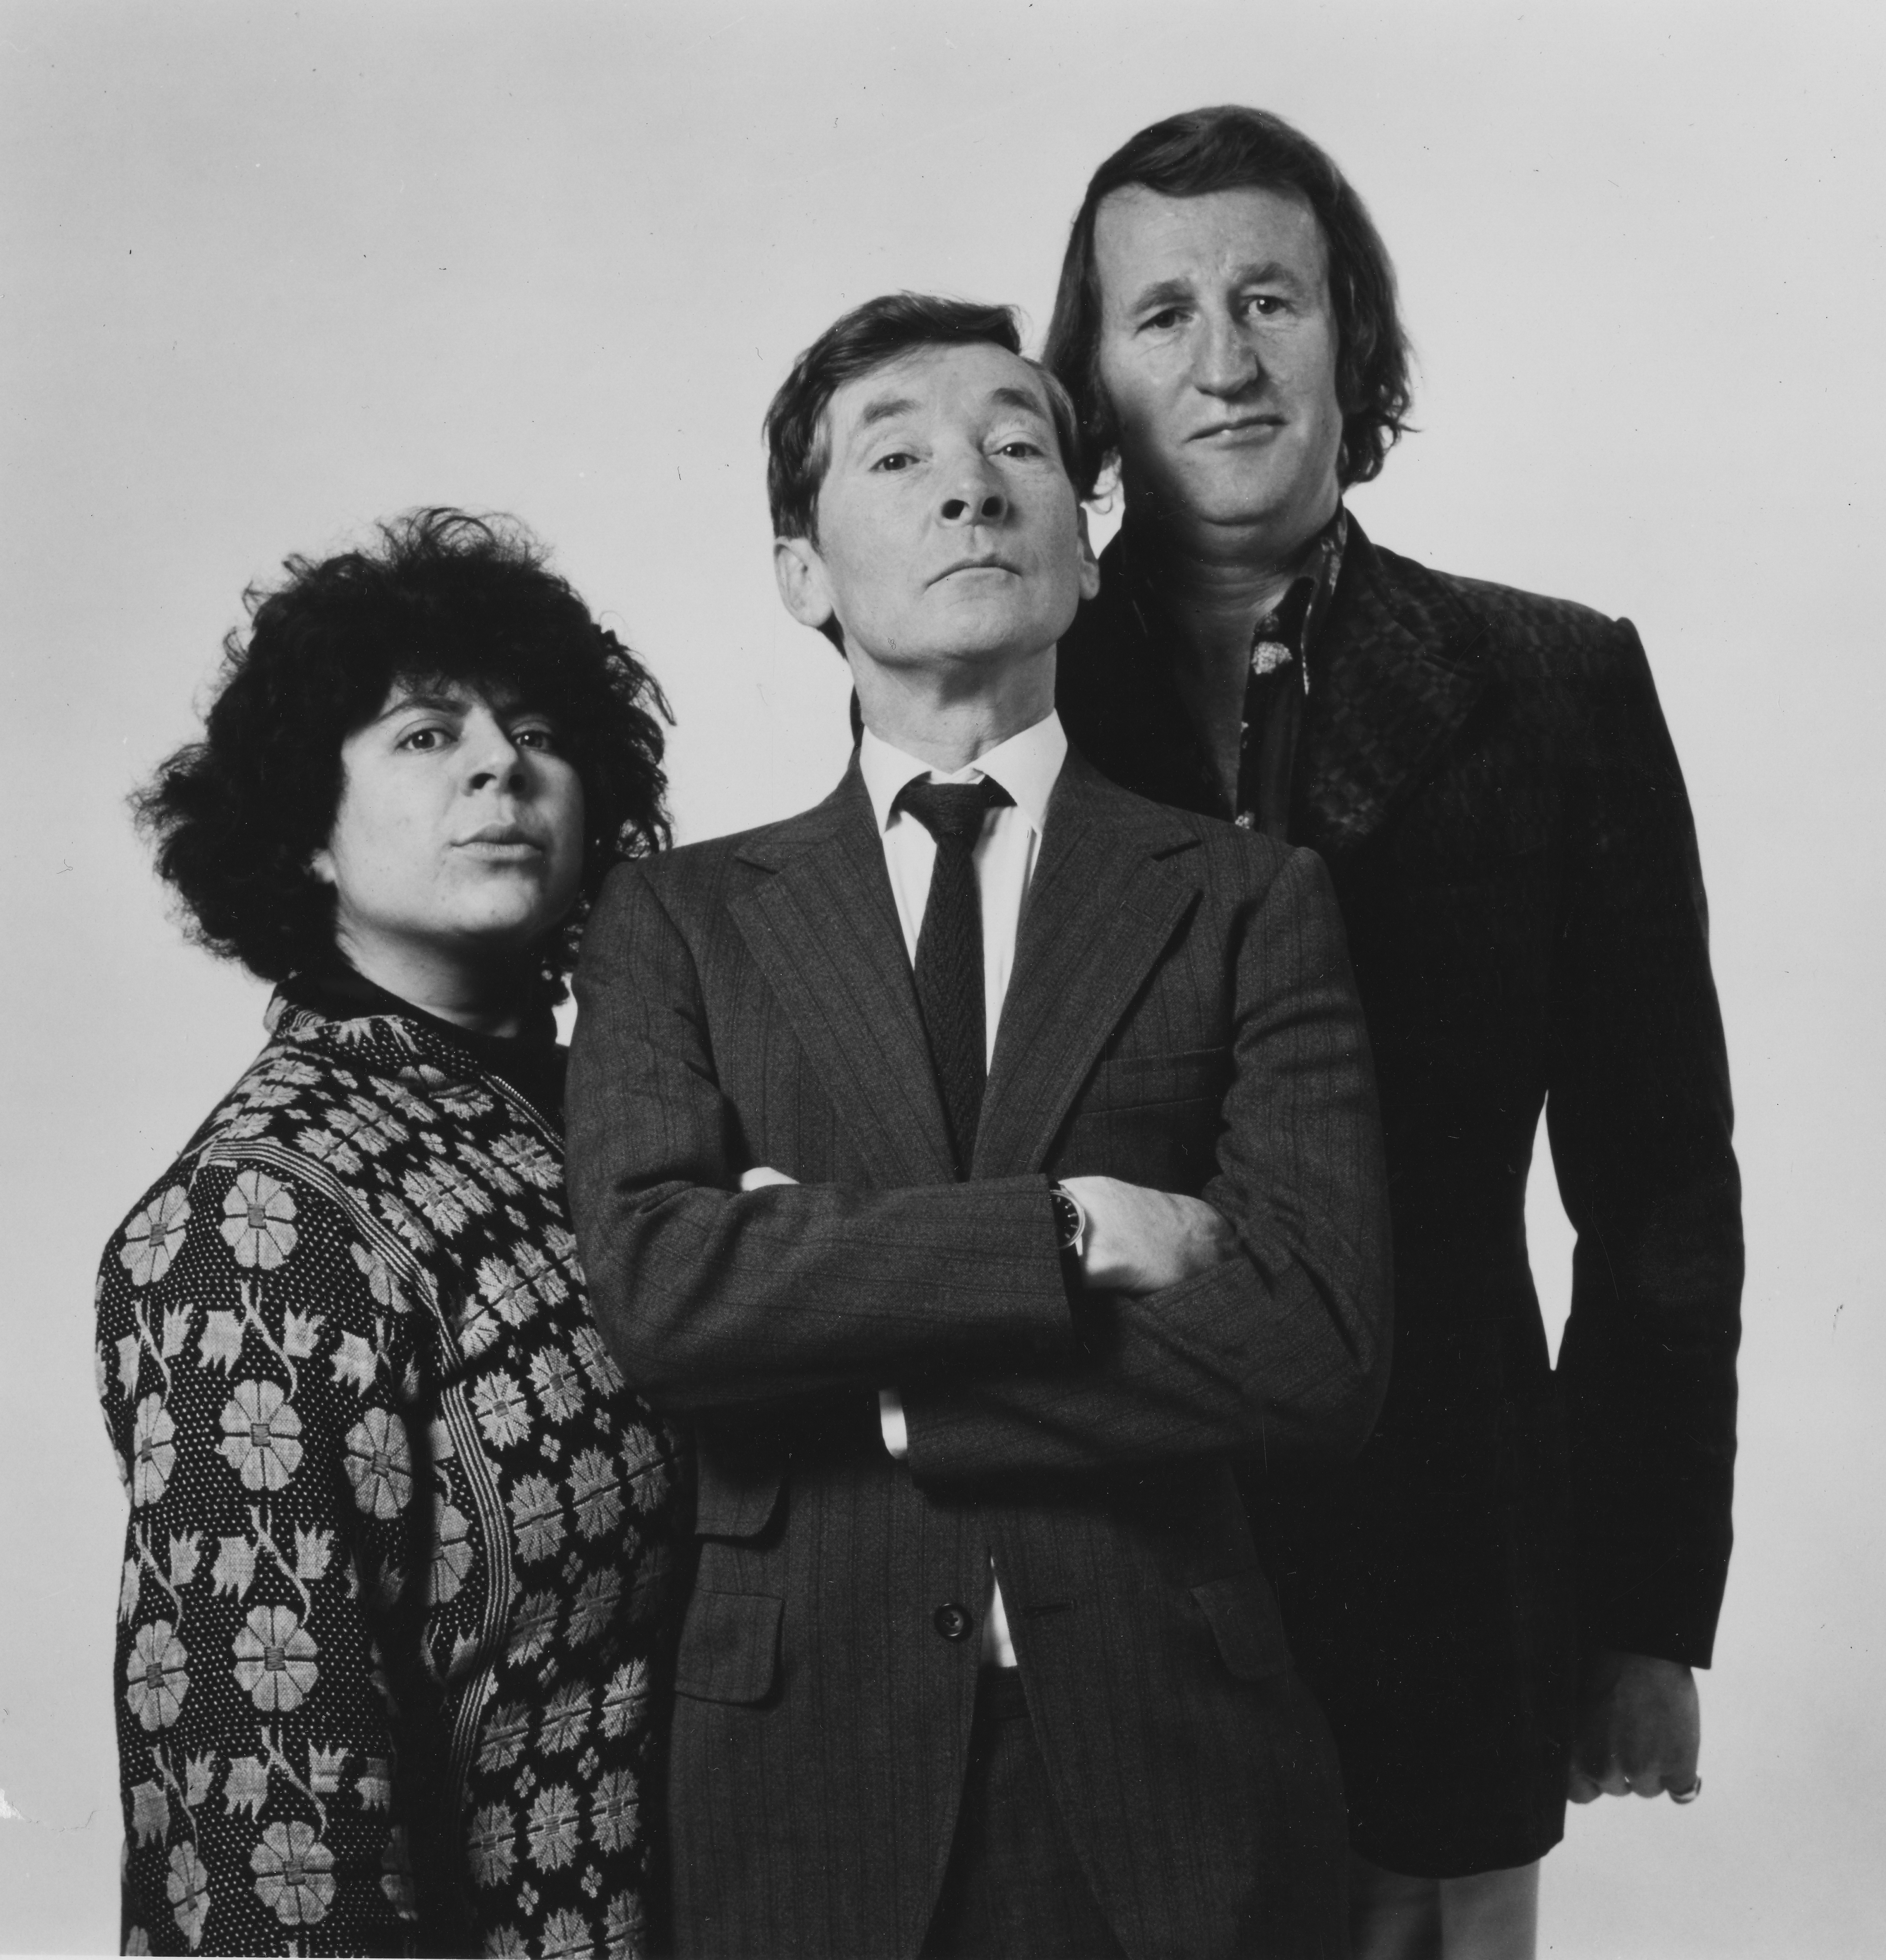 Portrait of comic actors (L-R) Miriam Margolyes, Kenneth Williams and Lance Percival, photographed for Radio Times in connection with the BBC Radio series 'Oh, Get On With It!', 1976. First printed in Radio Times issue 2724, page 4, January 22nd 1976. (Photo by Radio Times/Getty Images)